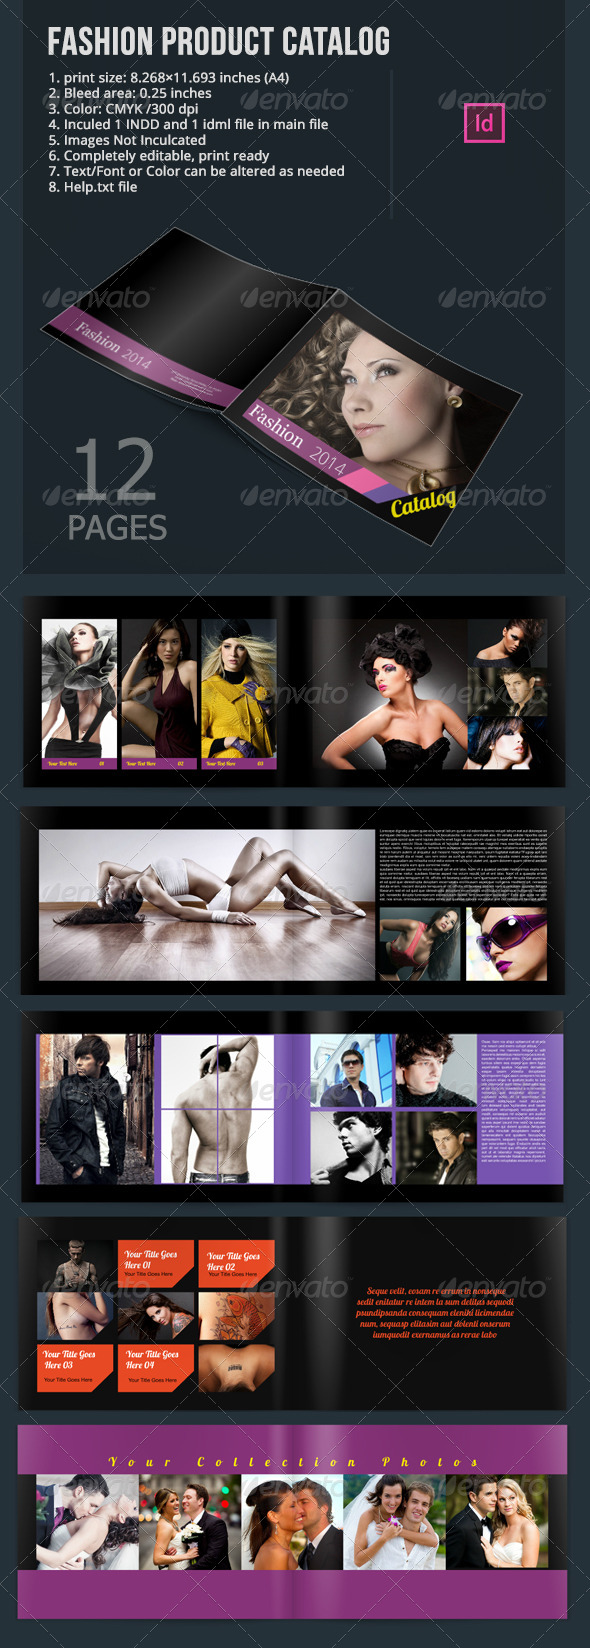 Fashion Product Catalog In-Design Templates - Catalogs Brochures